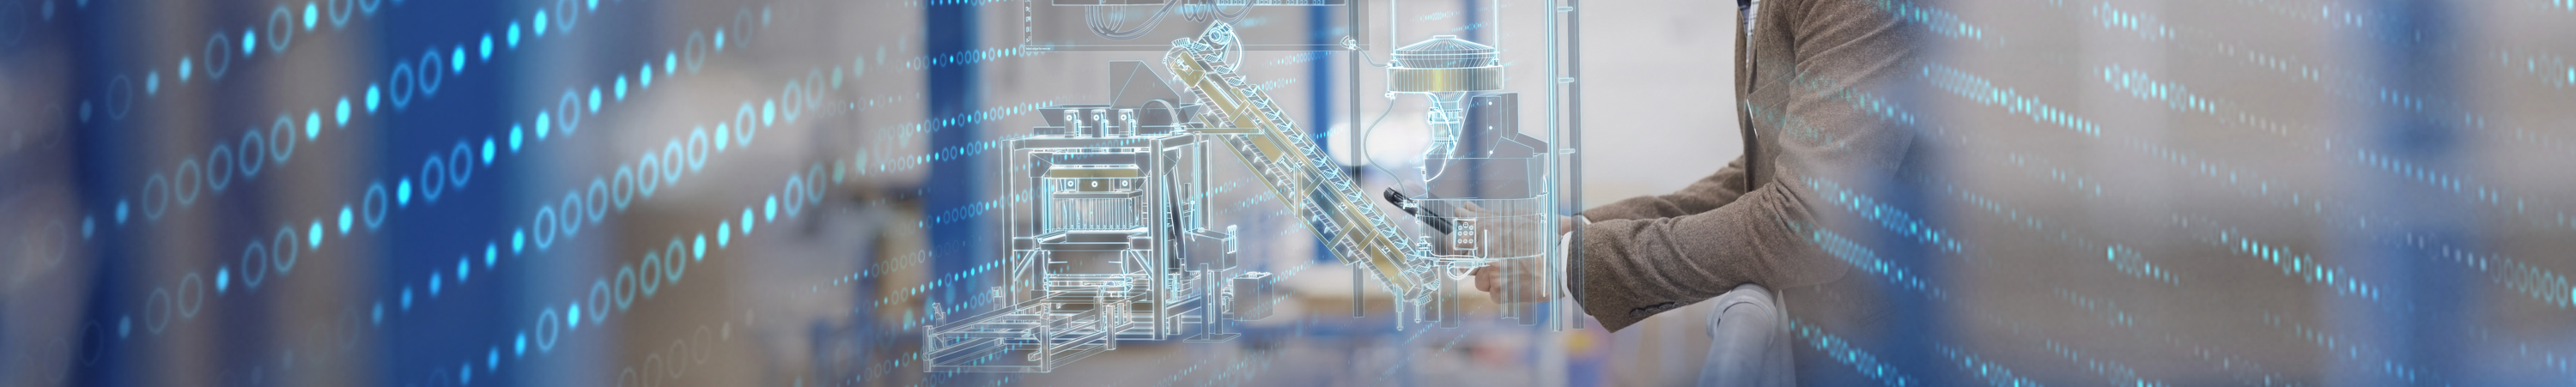 Siemens PLM Industrial Machinery image